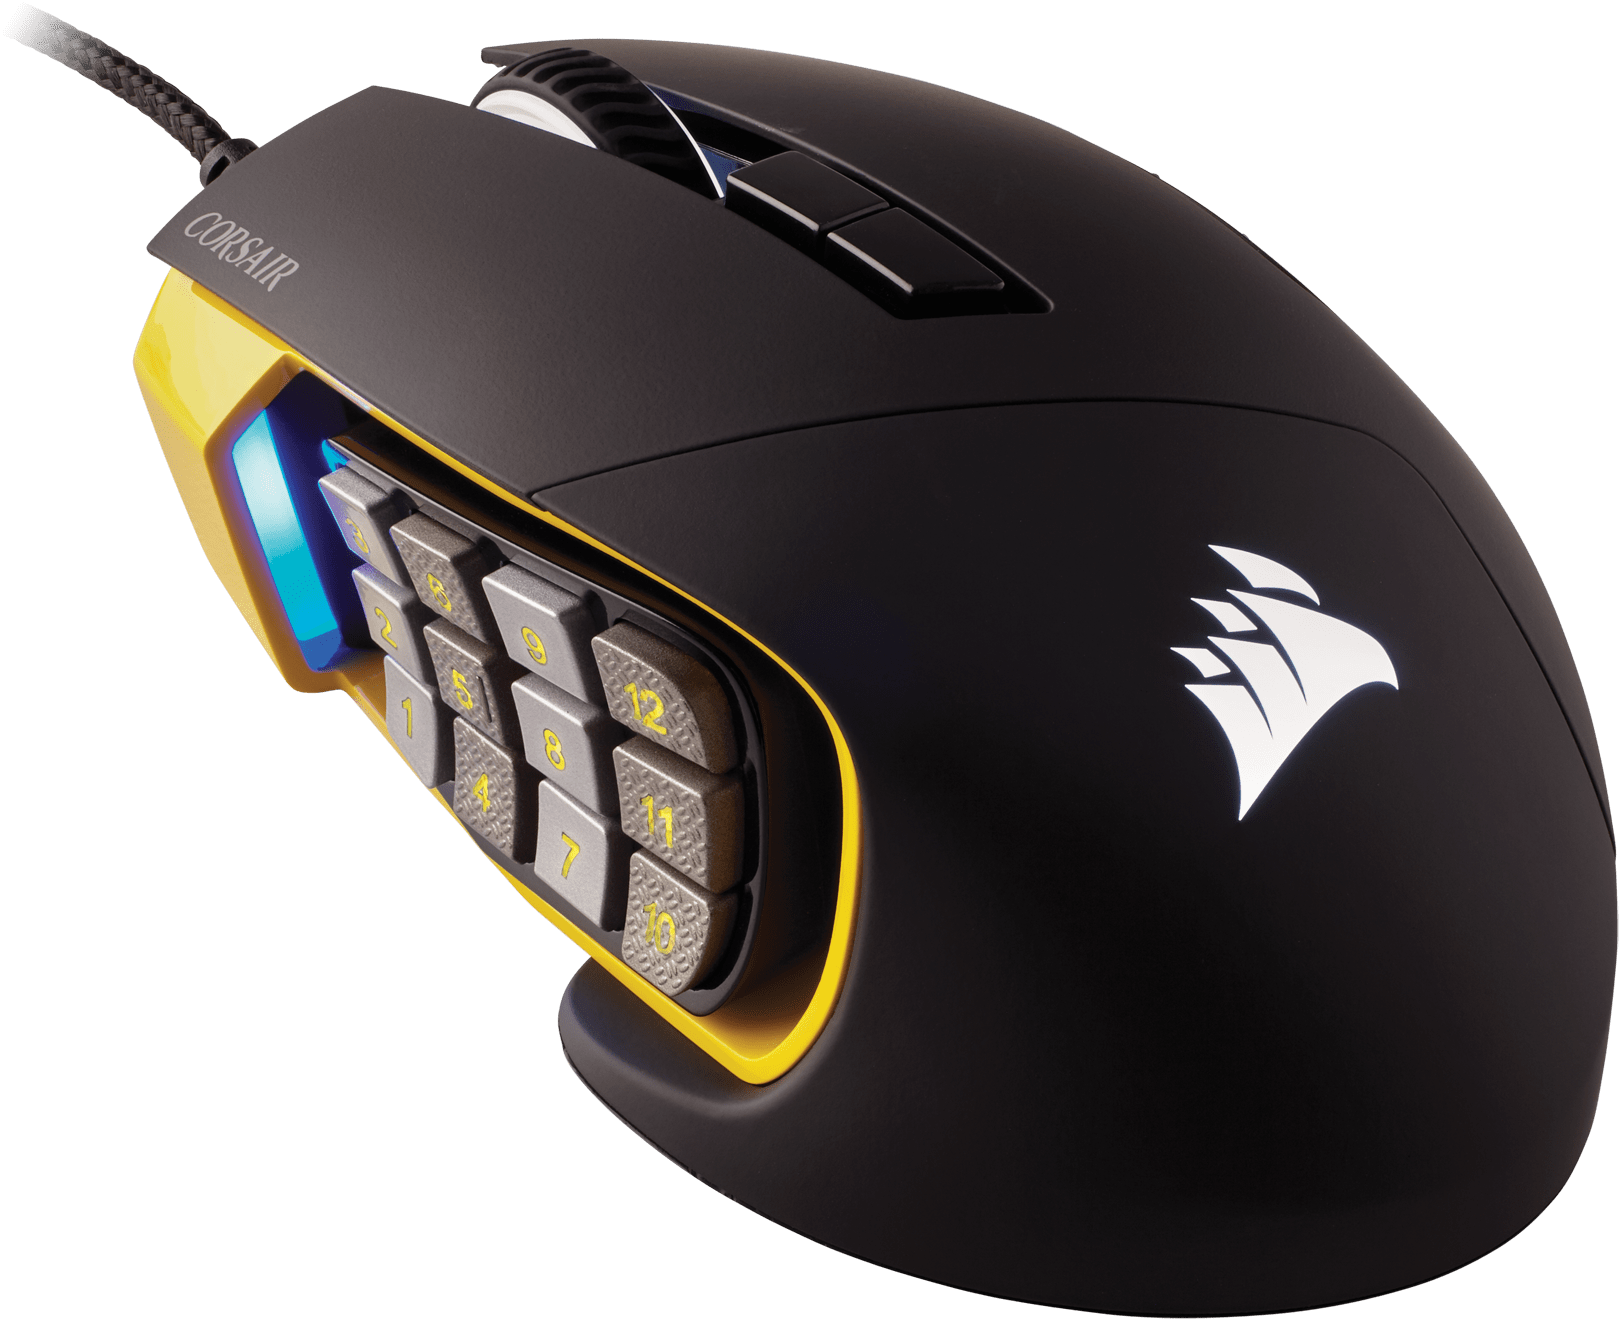 MM4 gaming mouse